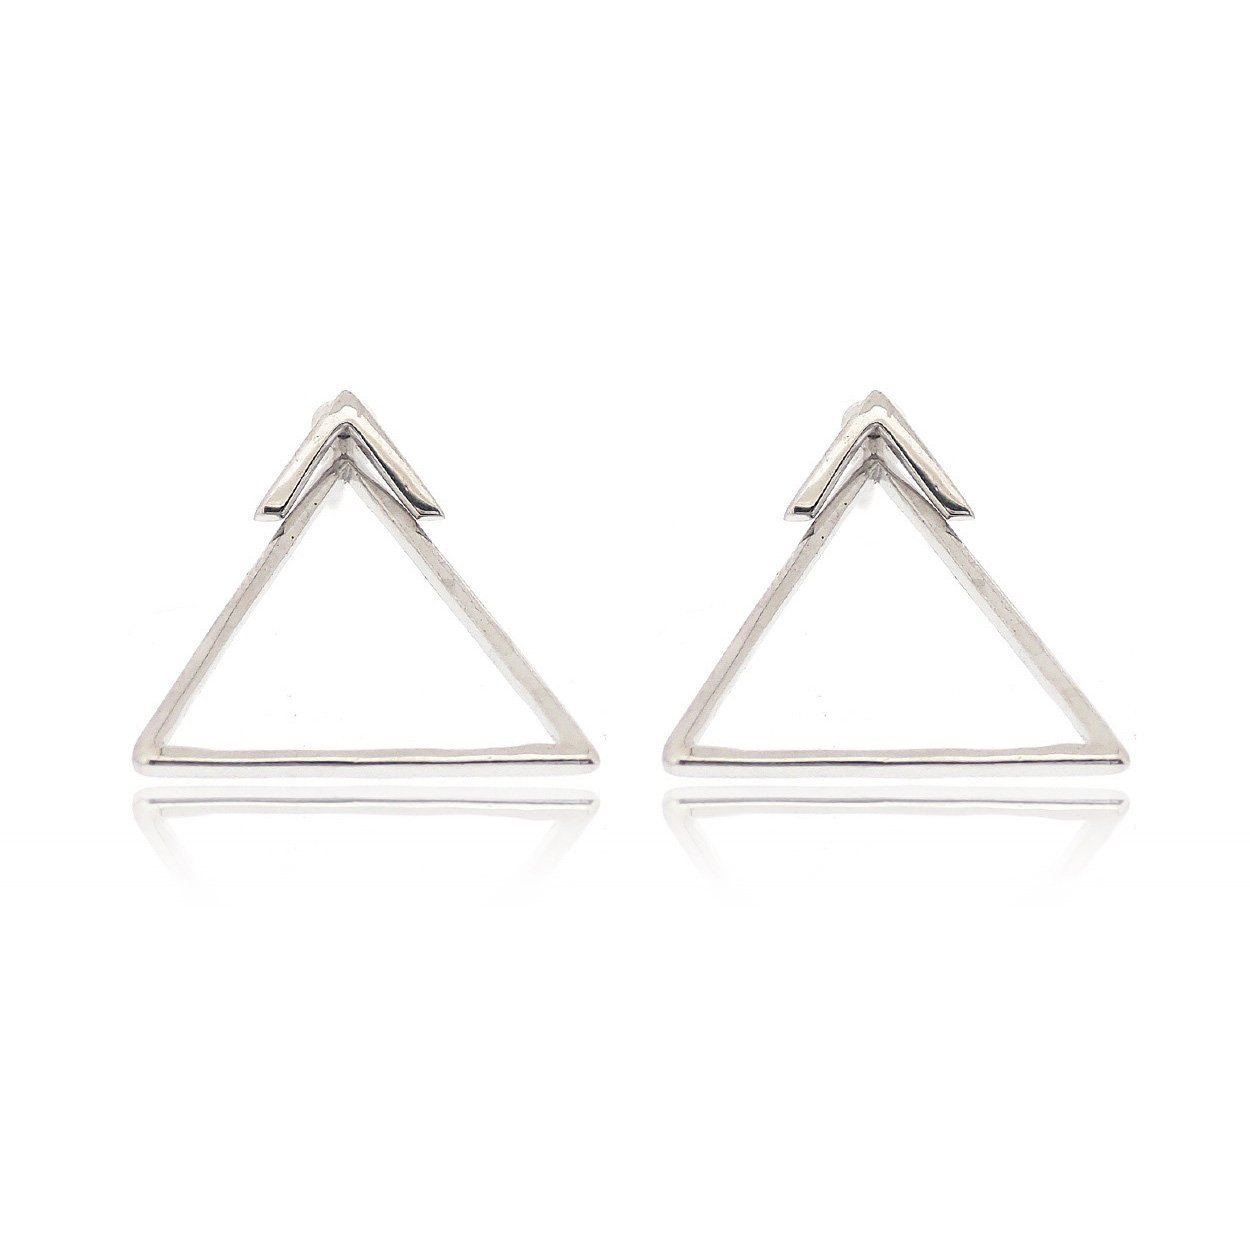 Sovats Two Way Earring Triangle For Women 925 Sterling Silver Rhodium Plated - Simple, Stylish Front And Back Earrings&Trendy Nickel Free Earring